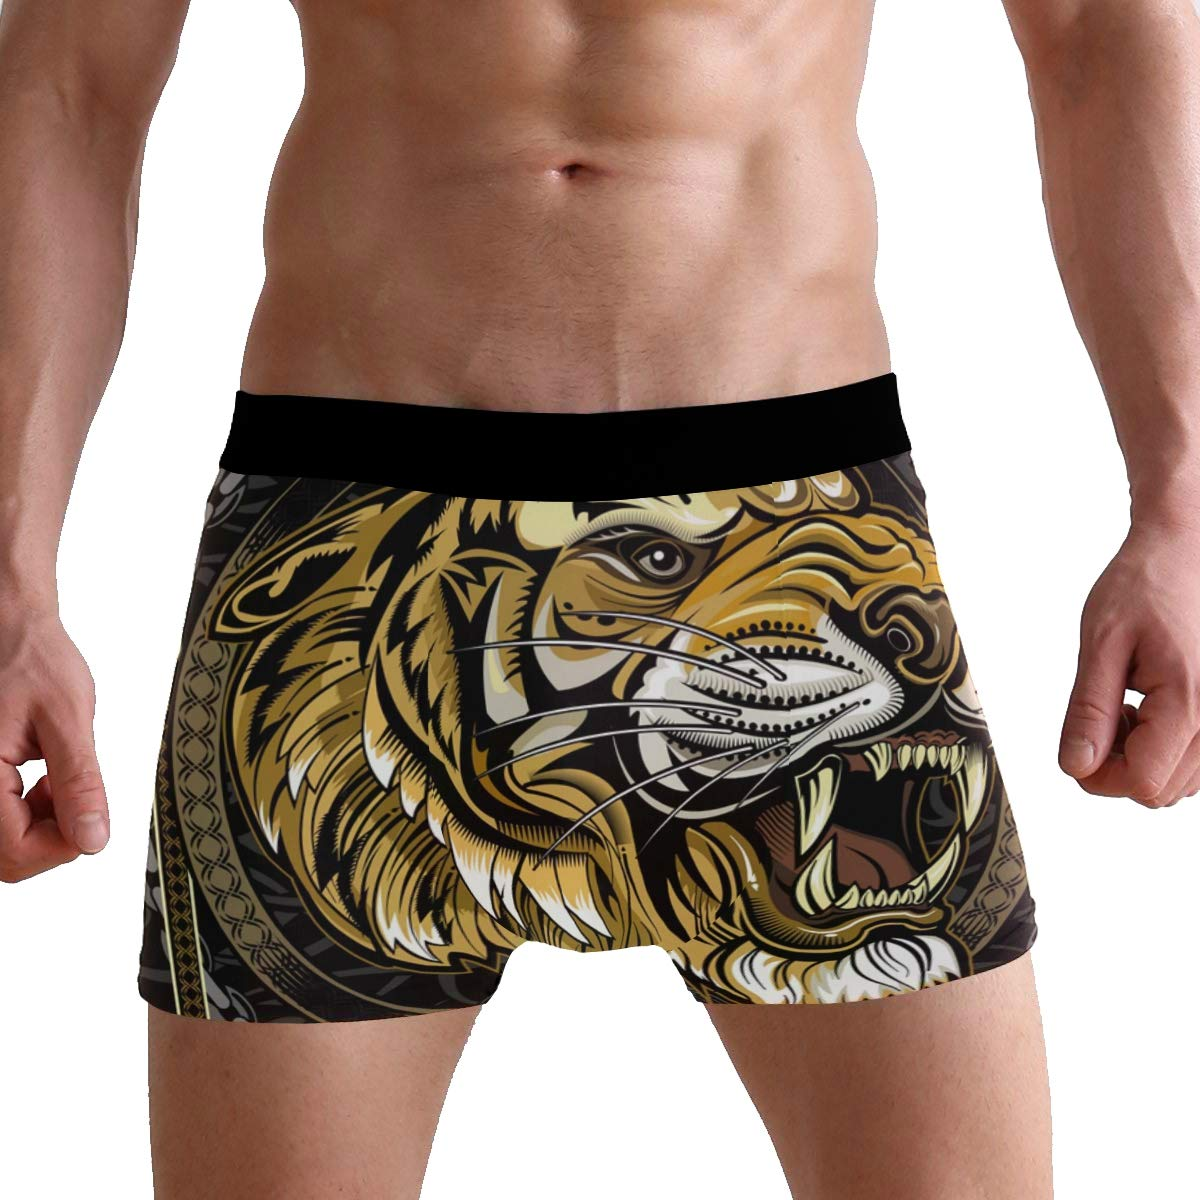 King Tiger with Crown Mens Underwear Soft Polyester Boxer Brief for Men Adult Teen Children